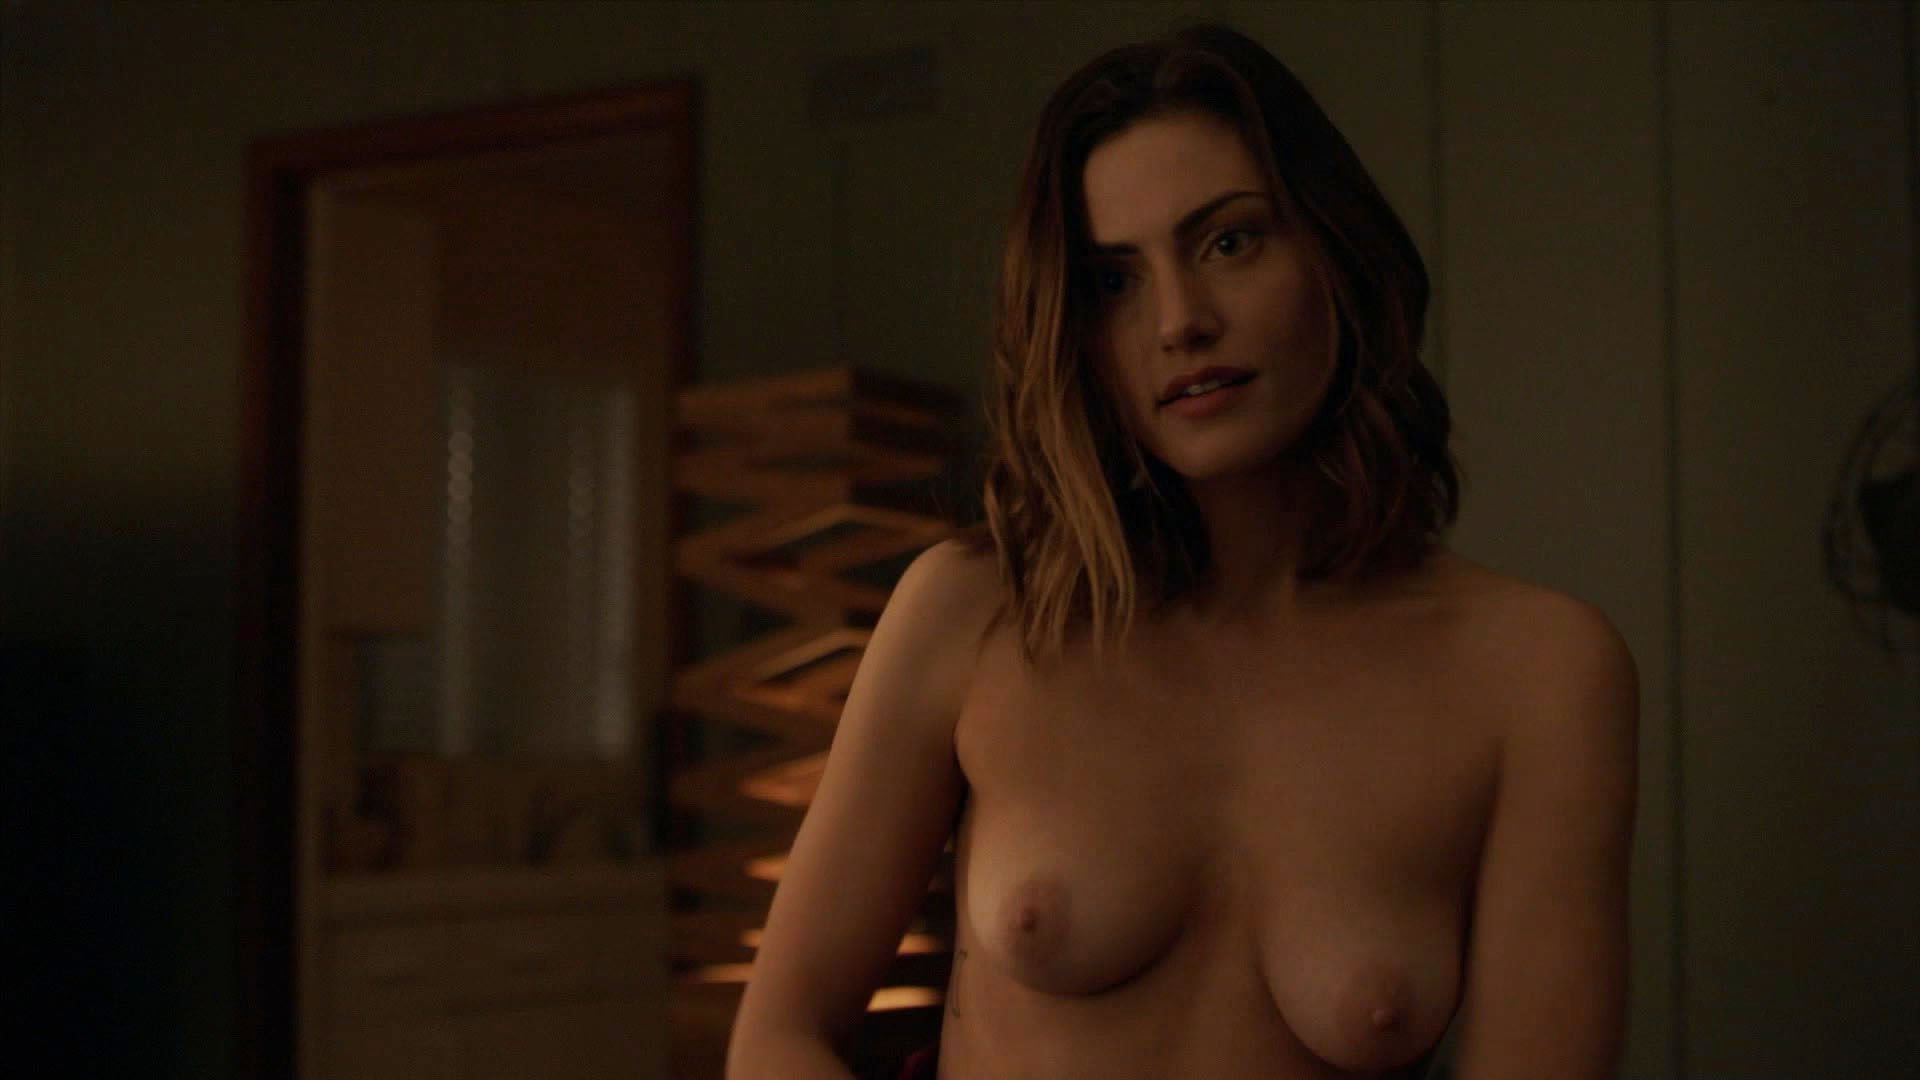 Phoebe Tonkin Nude The Affair 8 Pics Gif Video Thefappening